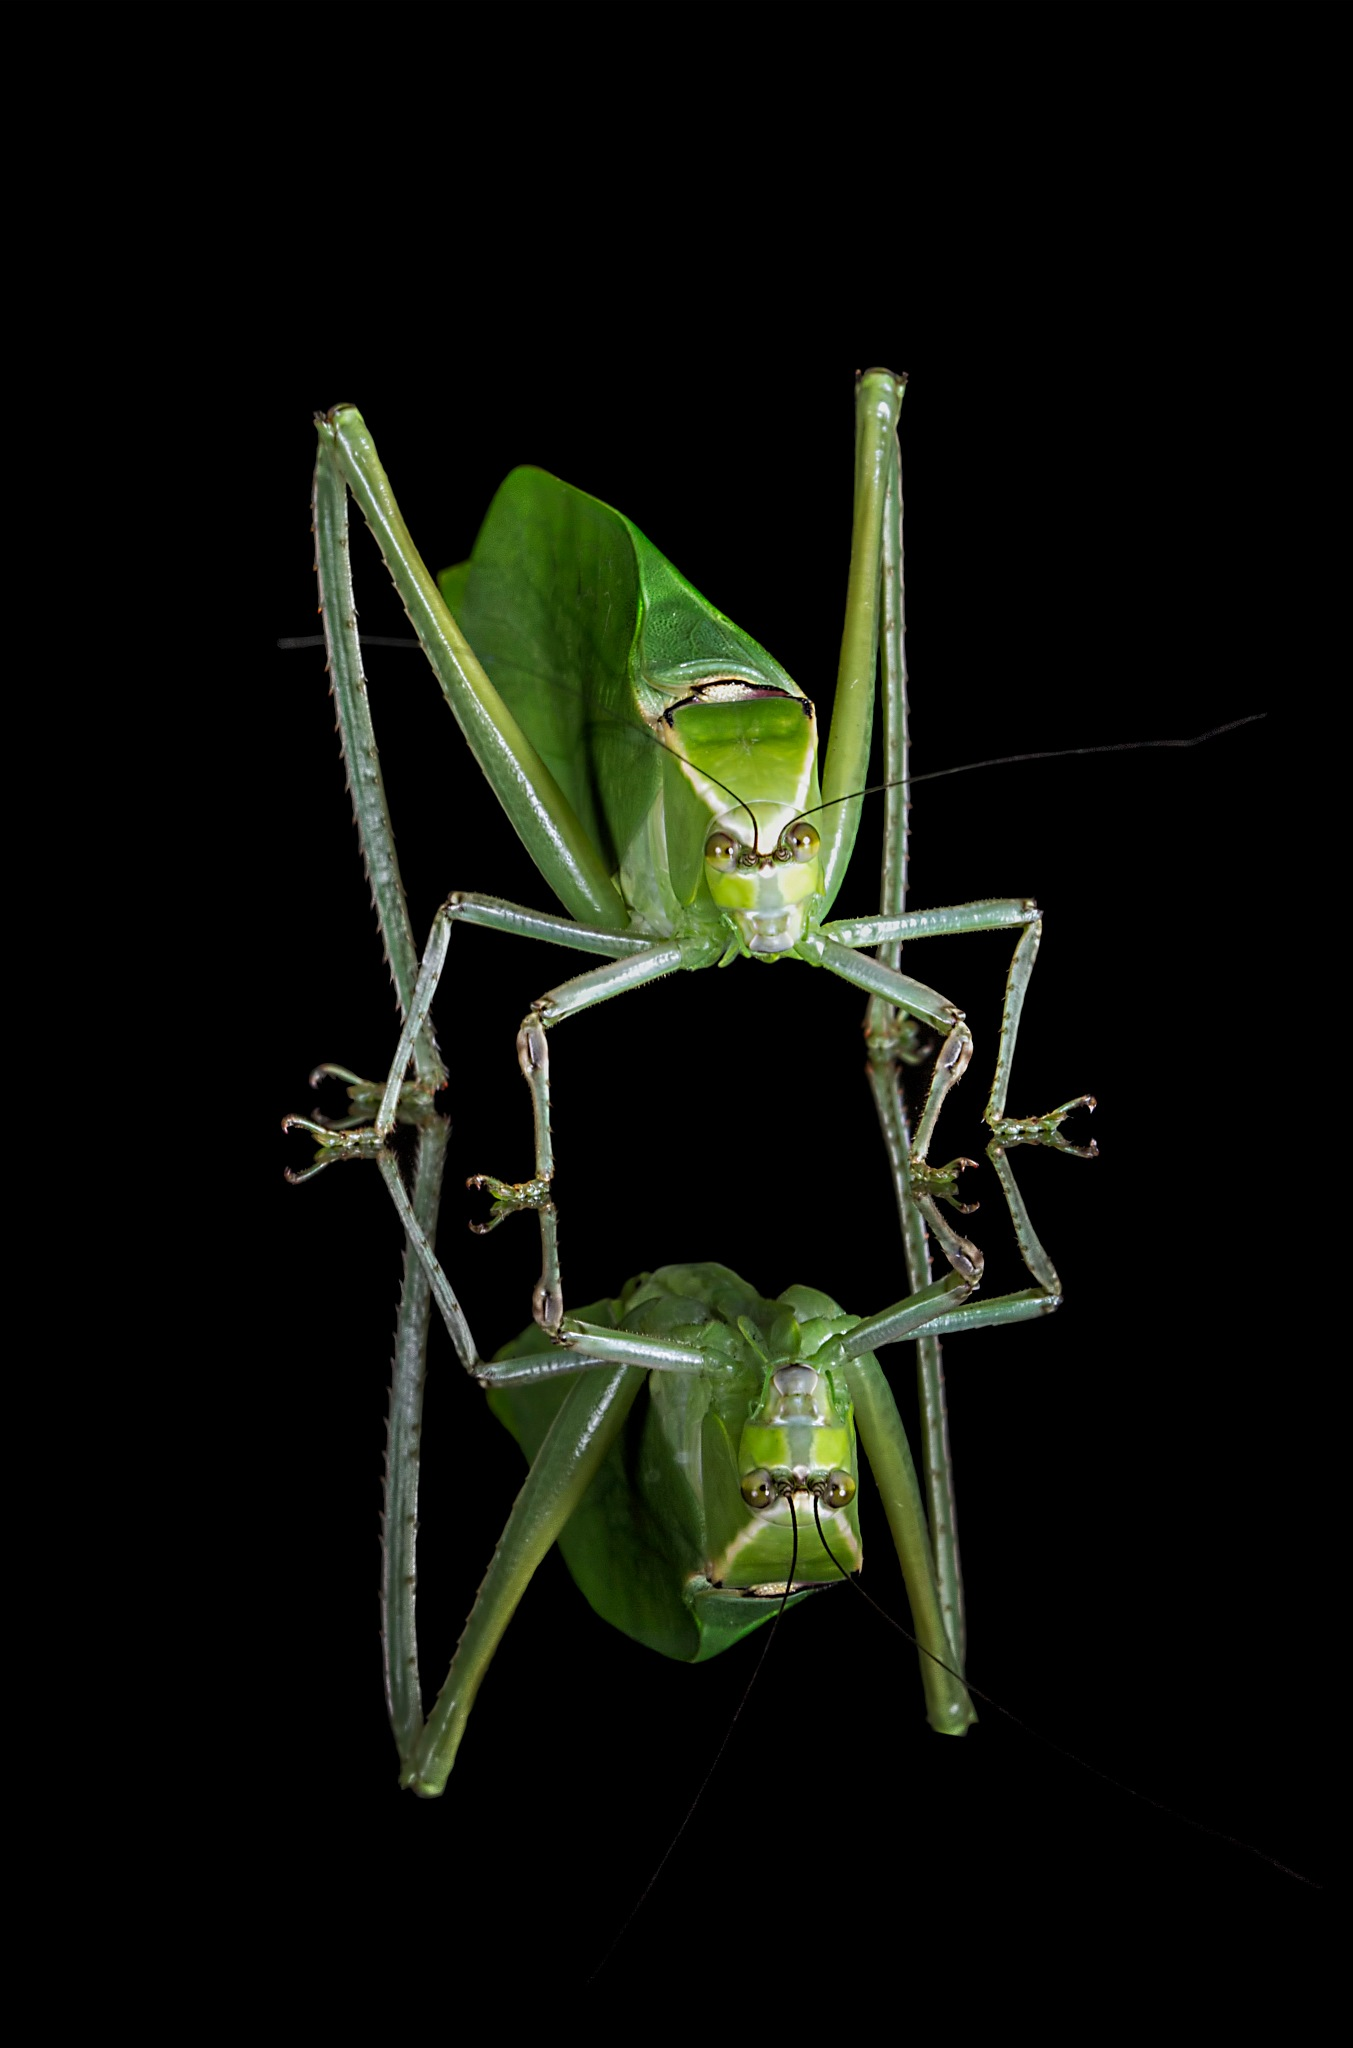 Katydid by Willpower